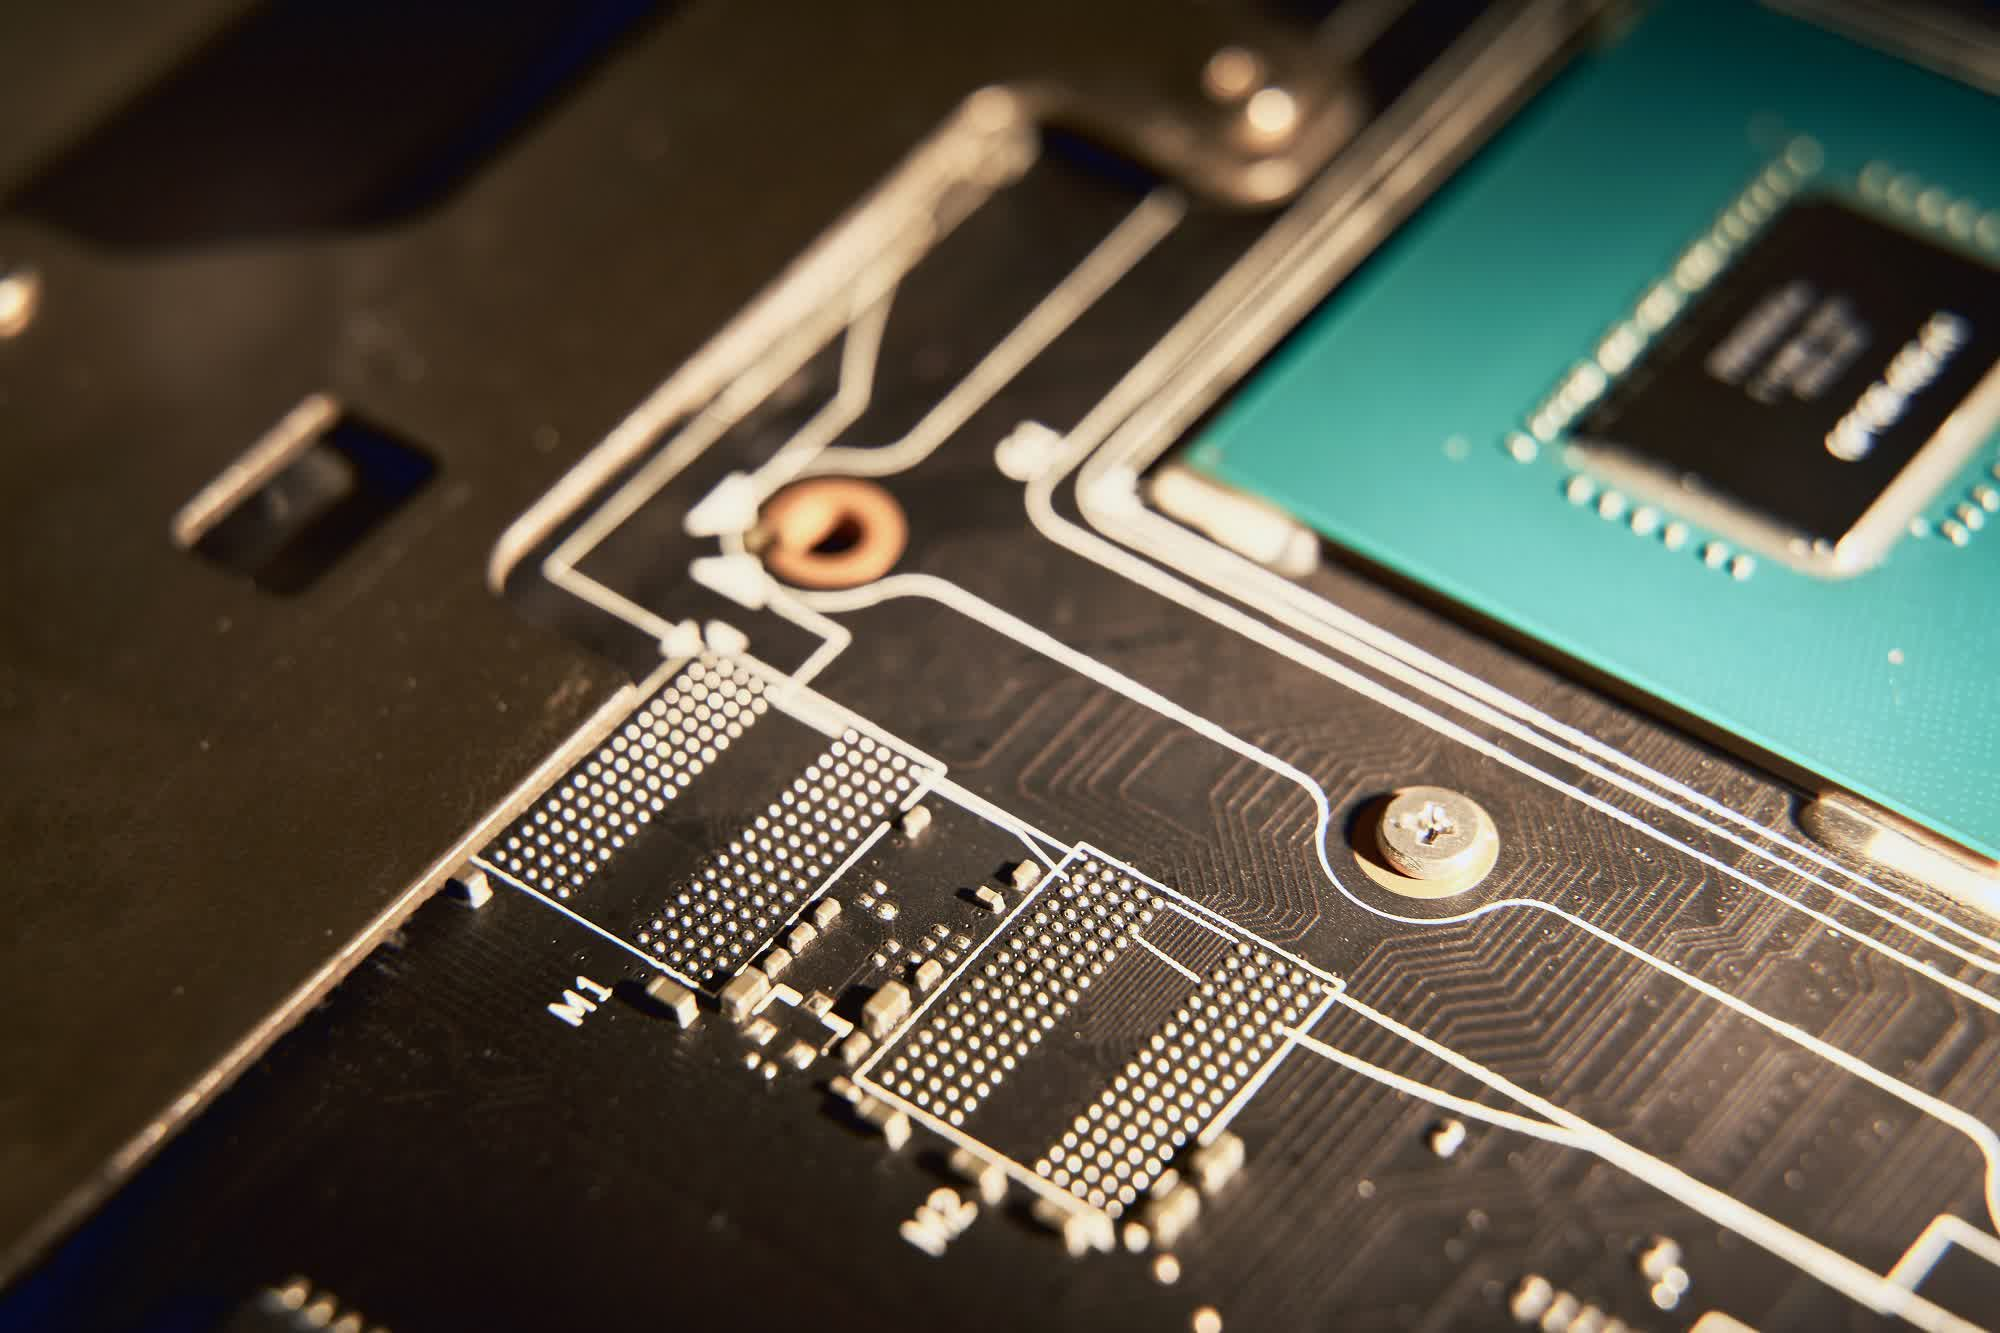 Graphics cards could become even more expensive following GDDR6 price rise